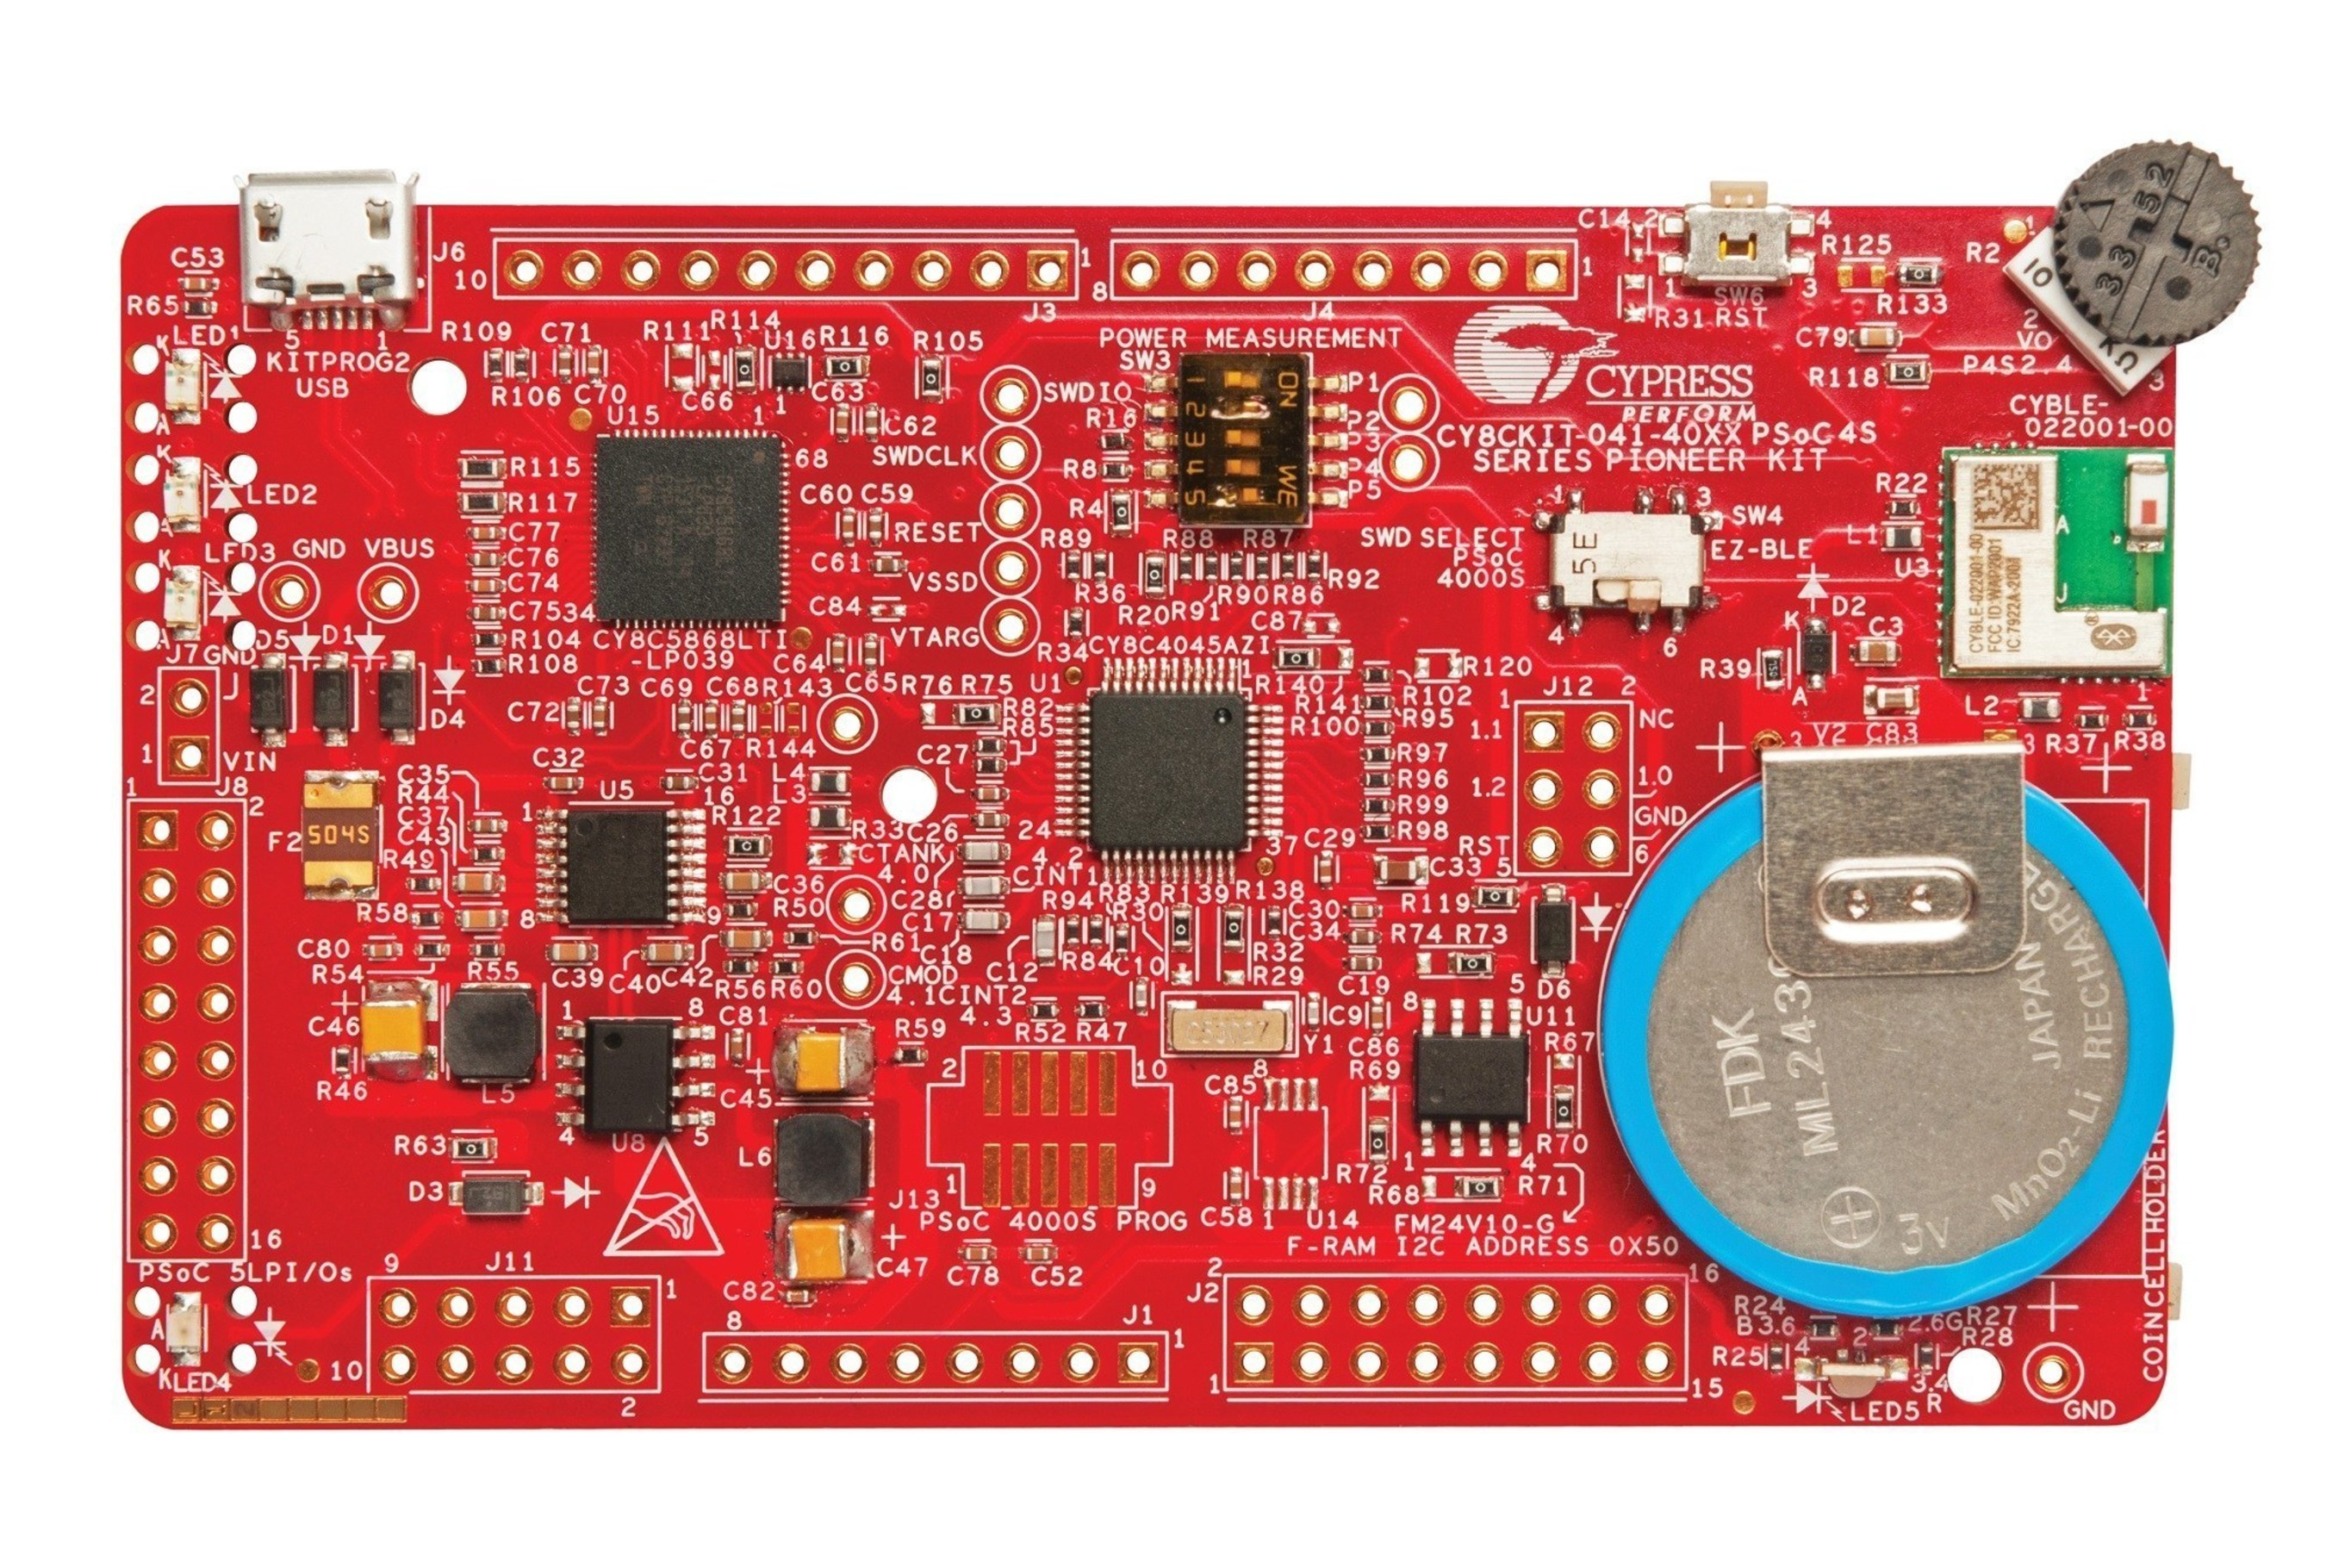 Pictured is the PSoC 4 S-Series Pioneer Kit from Cypress Semiconductor Corp.